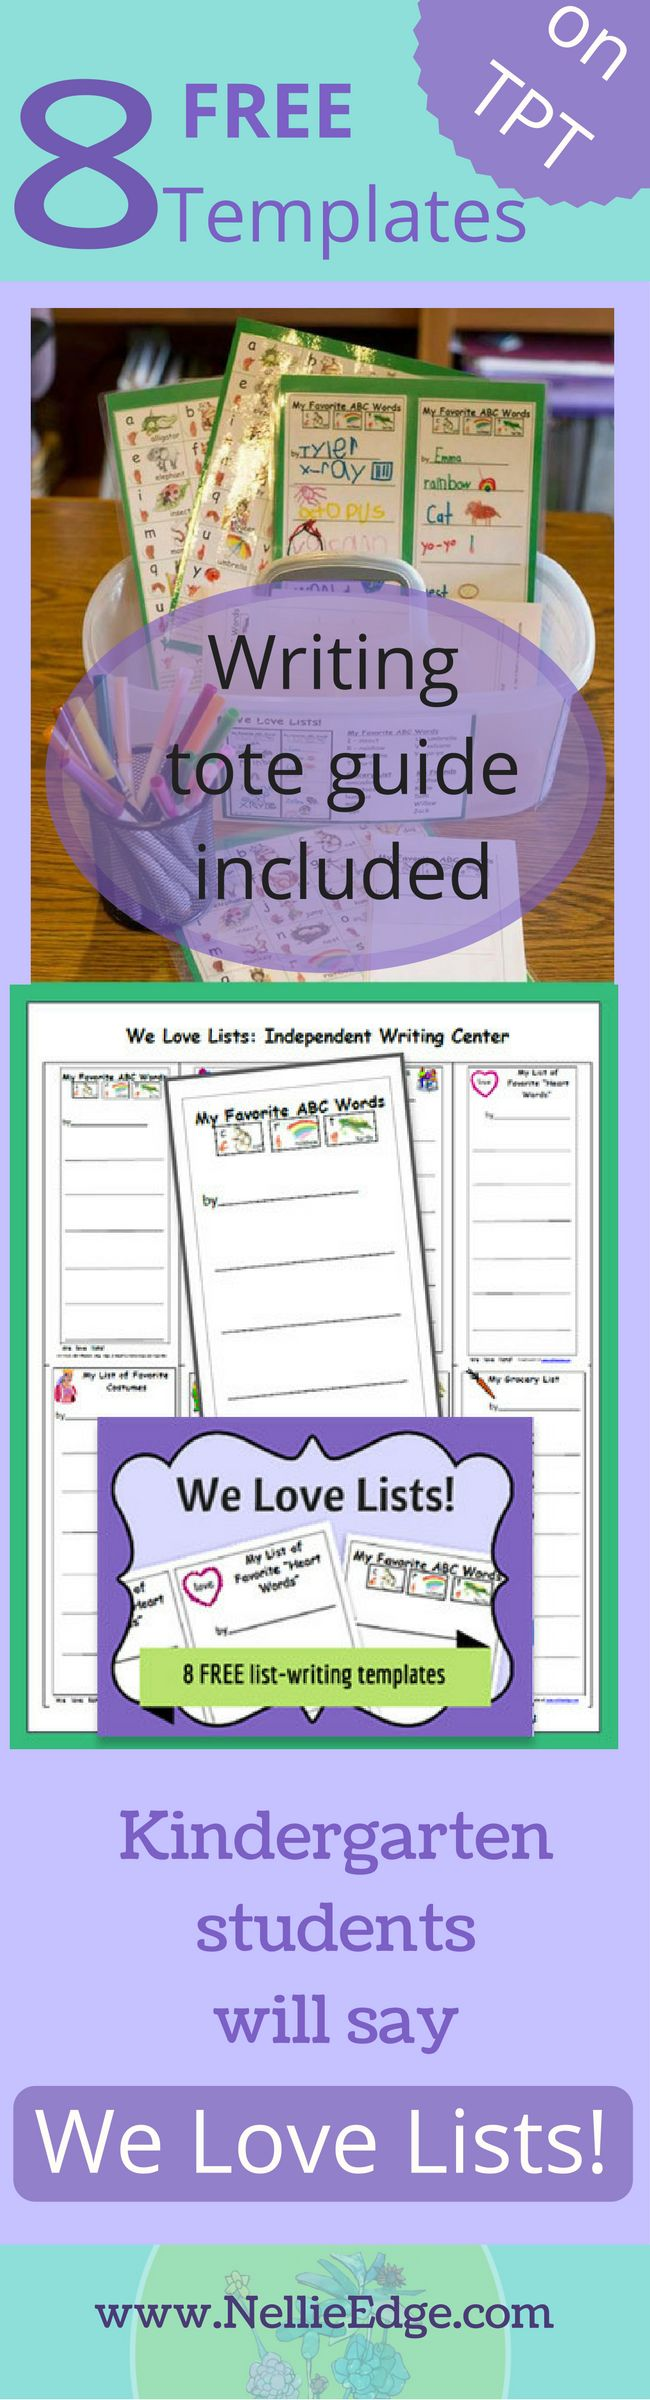 best ideas about kindergarten handwriting begin the year these 8 writing templates for independent writing centers templates are as